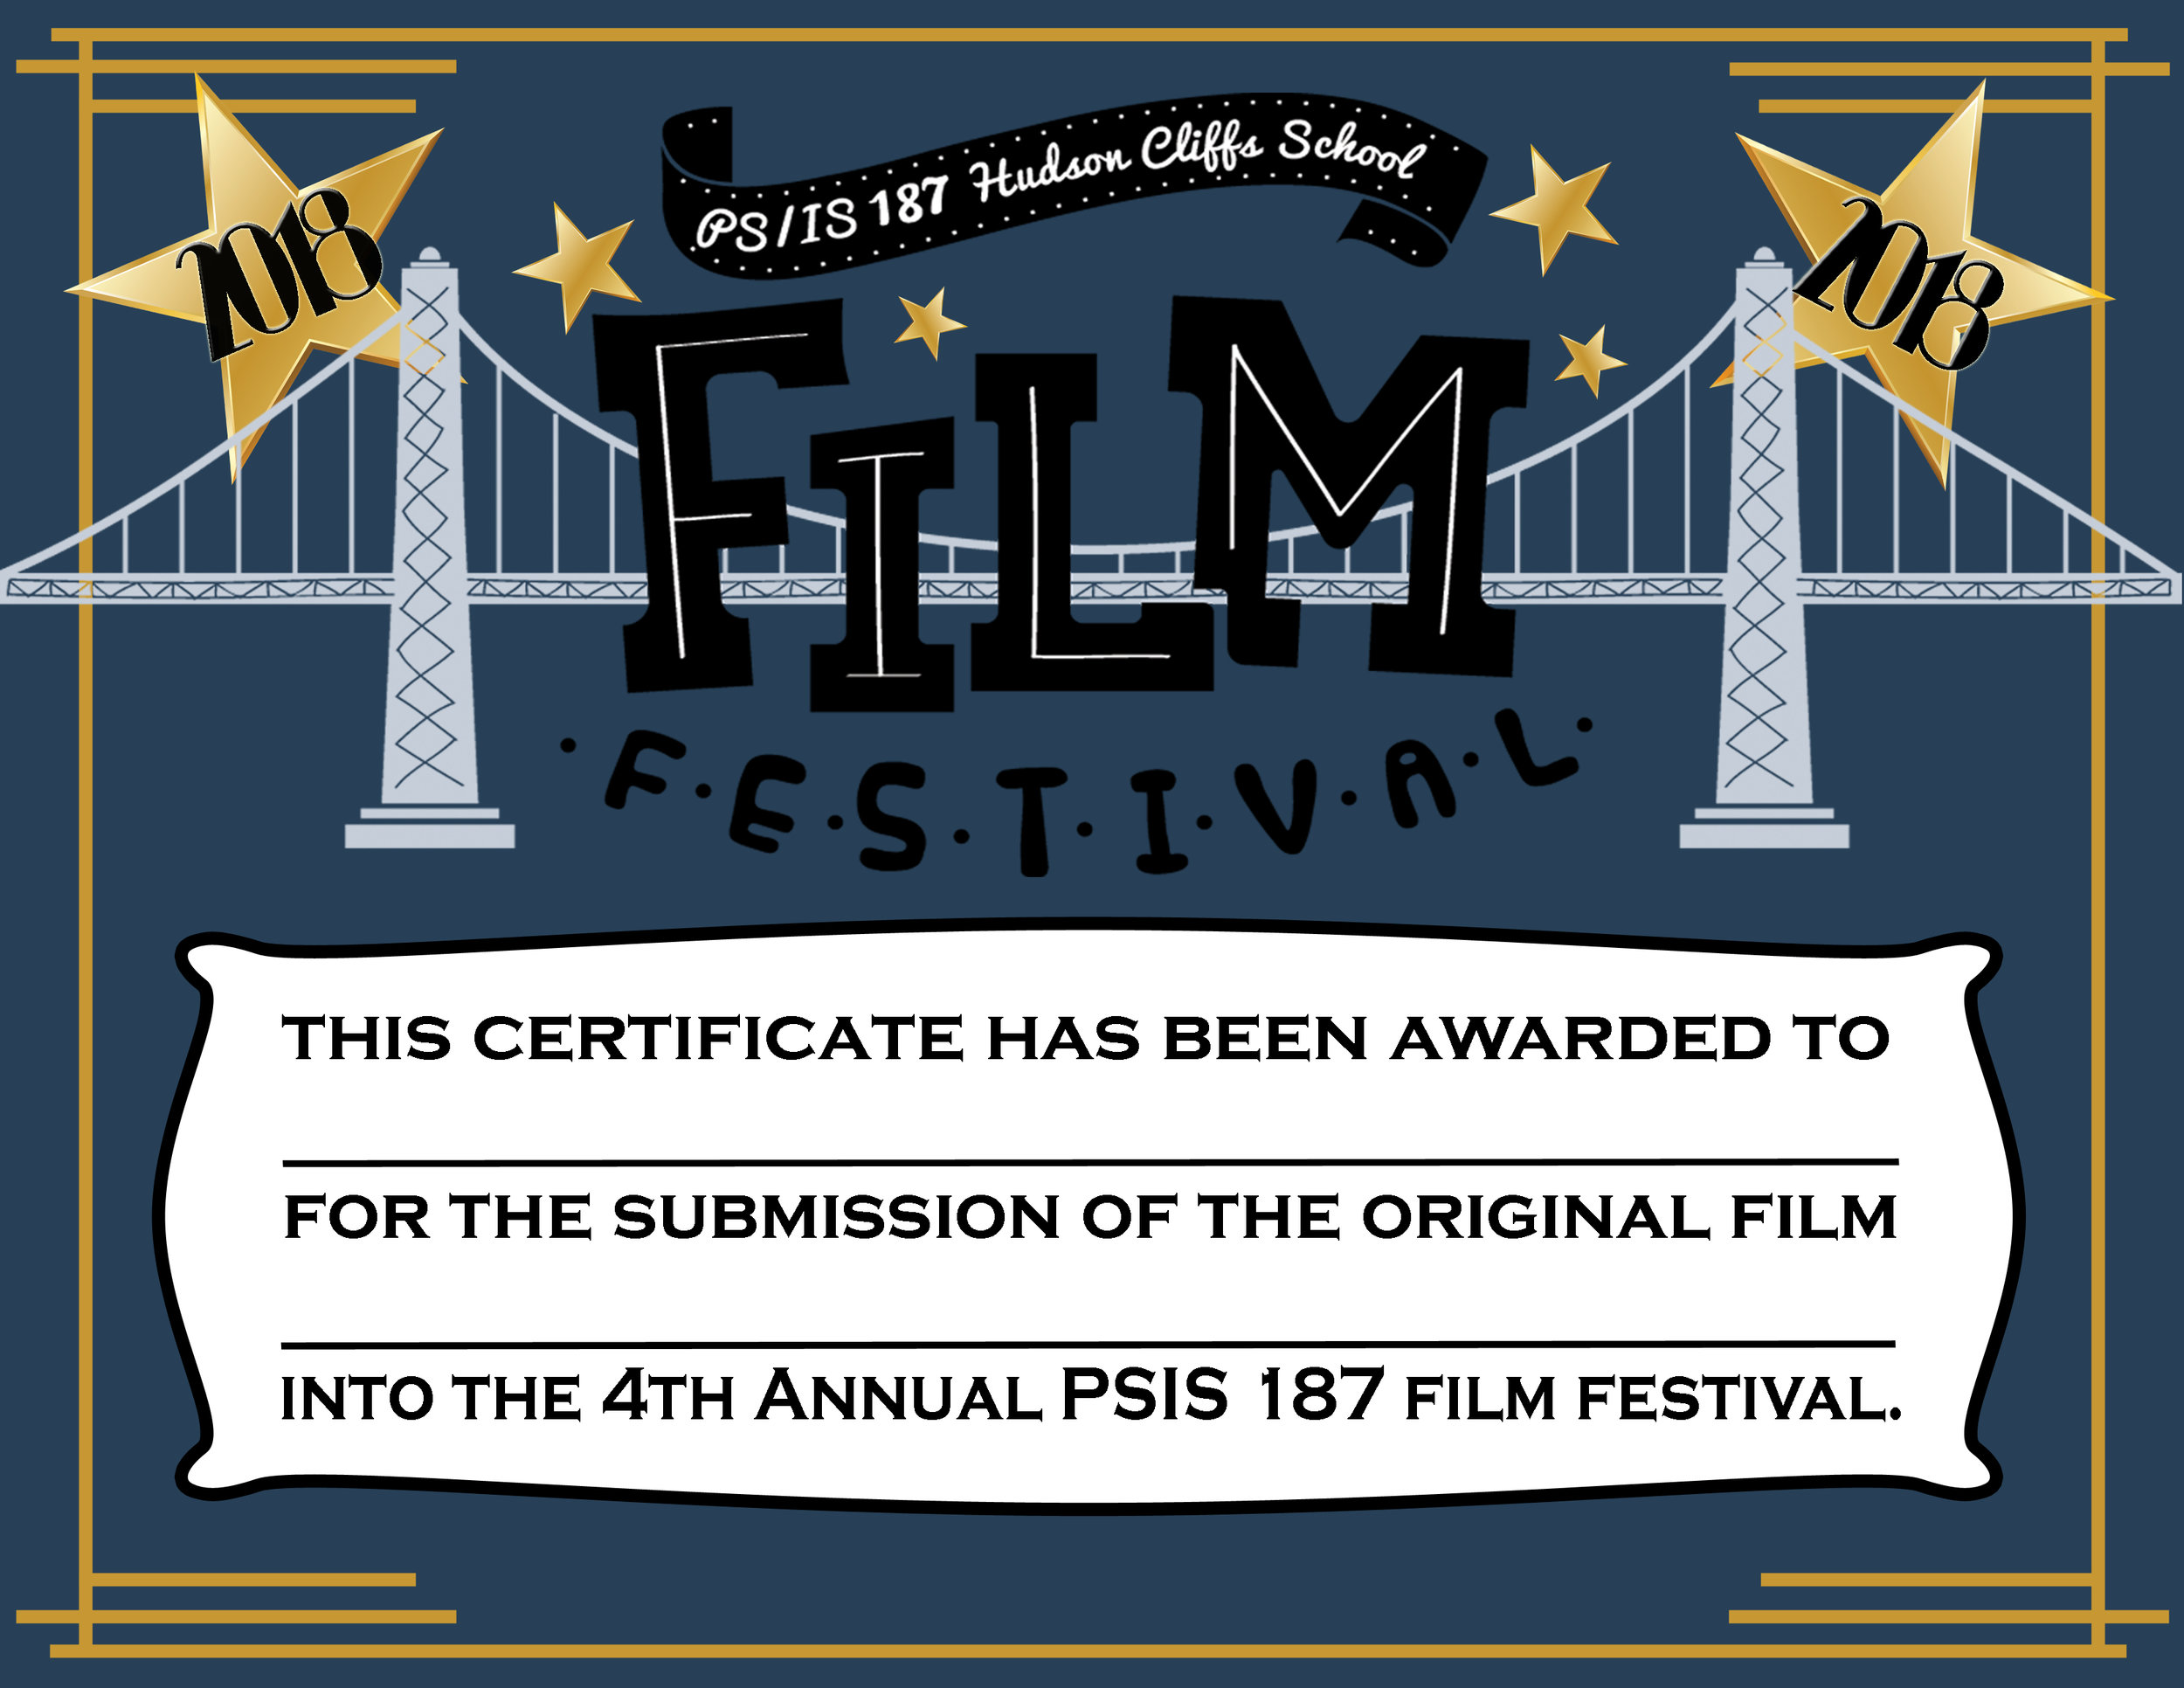 Redesign of 187 Film Festival Certificate